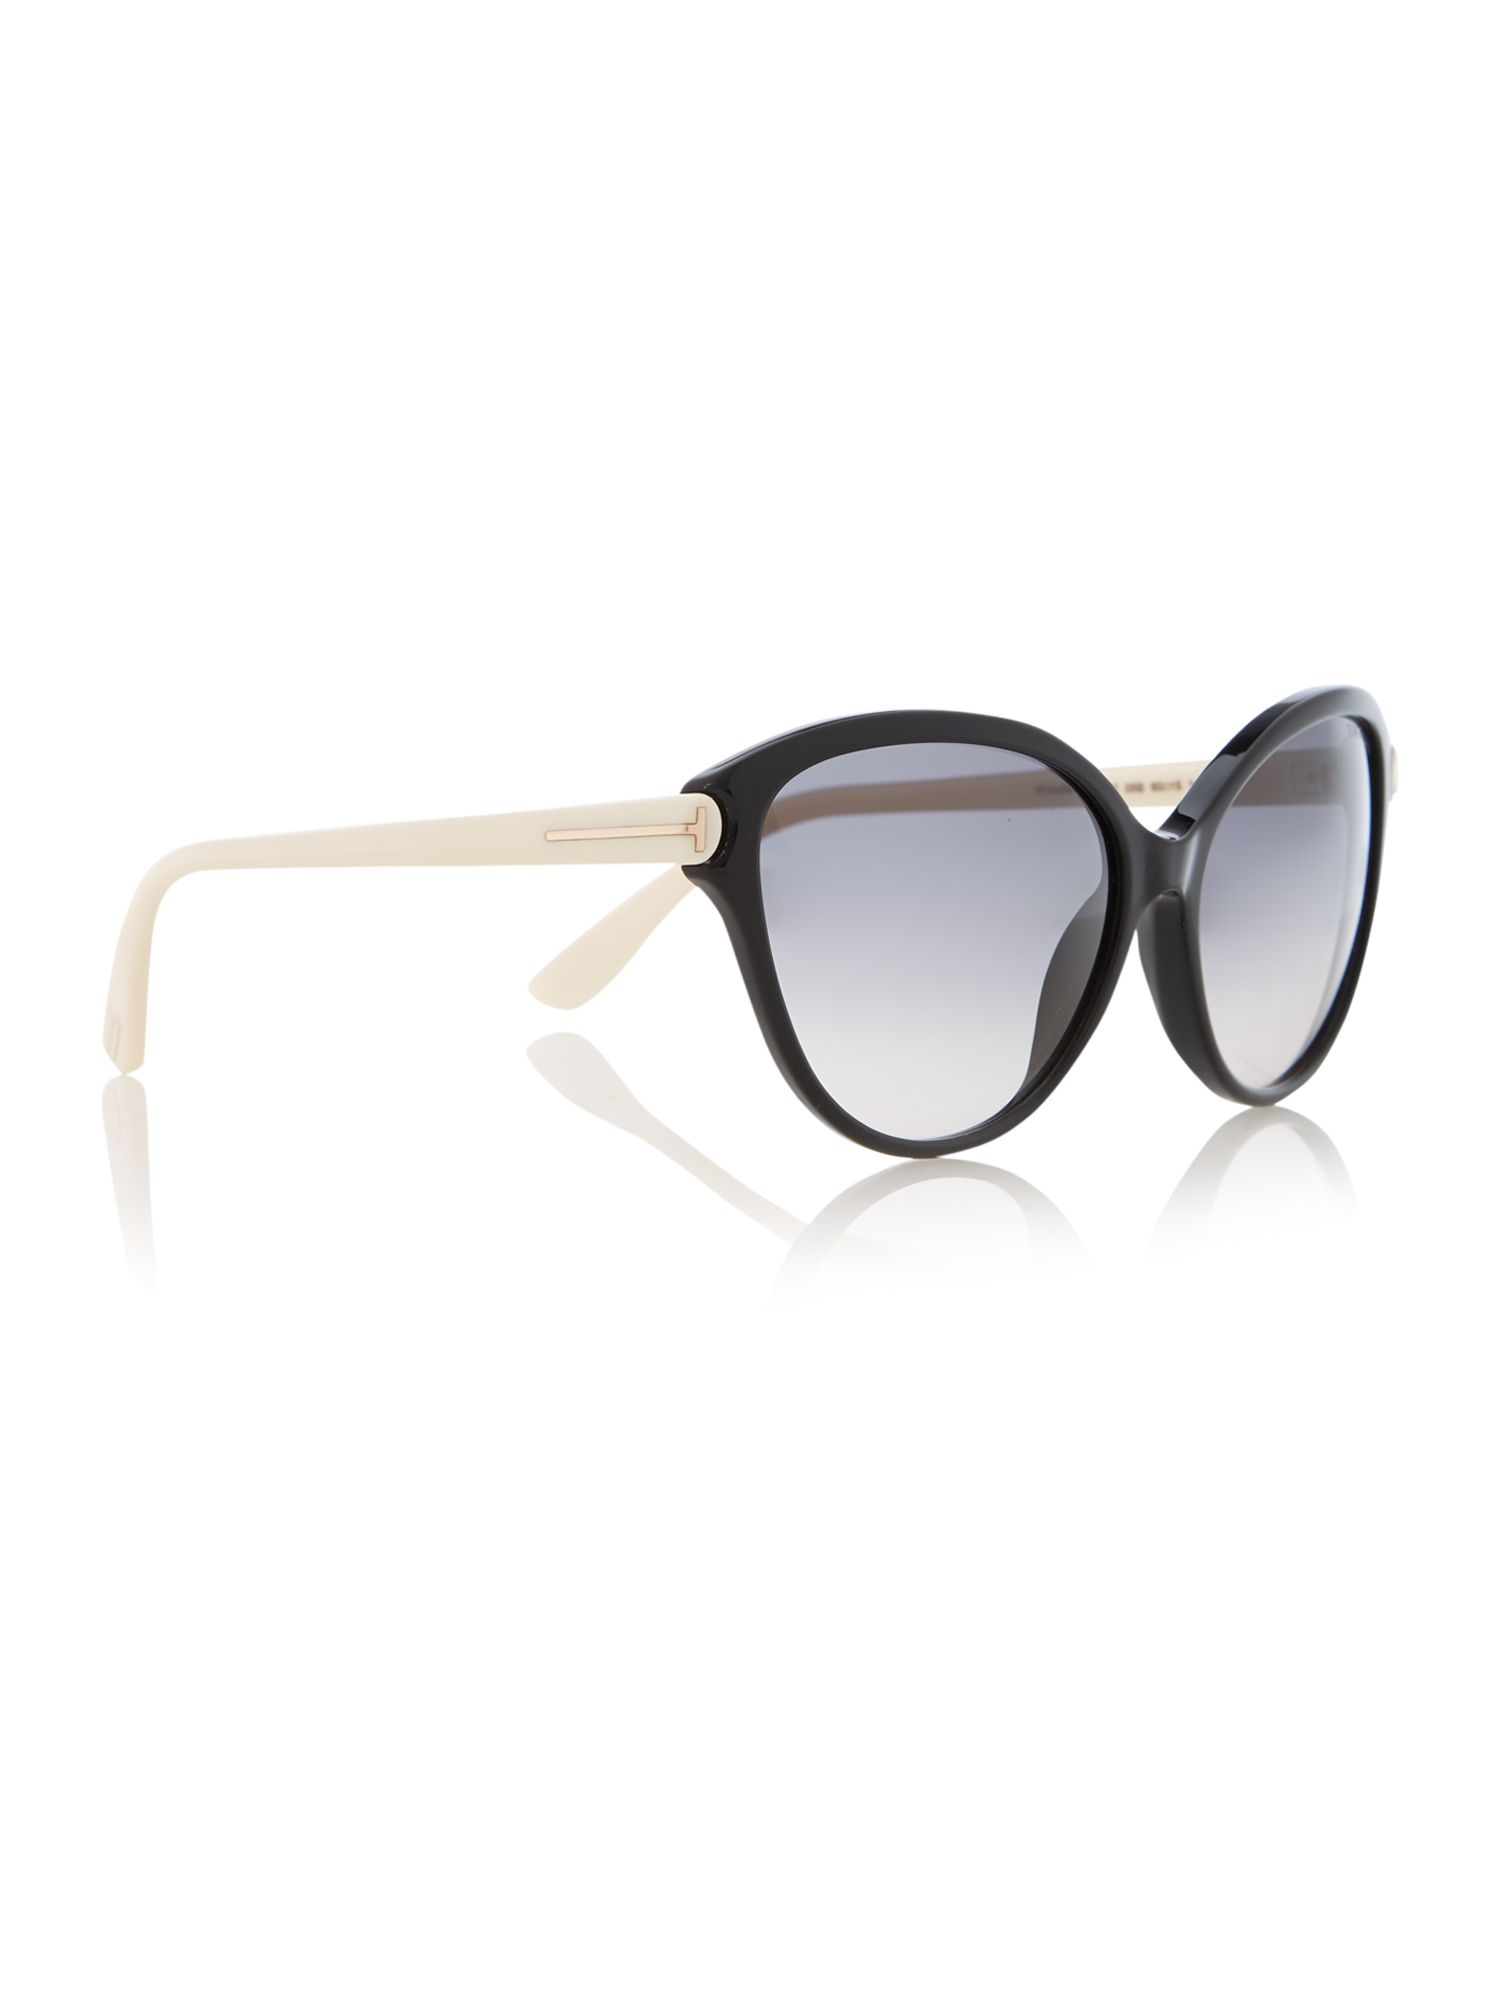 Tom Ford Square Matte Sunglasses in Black